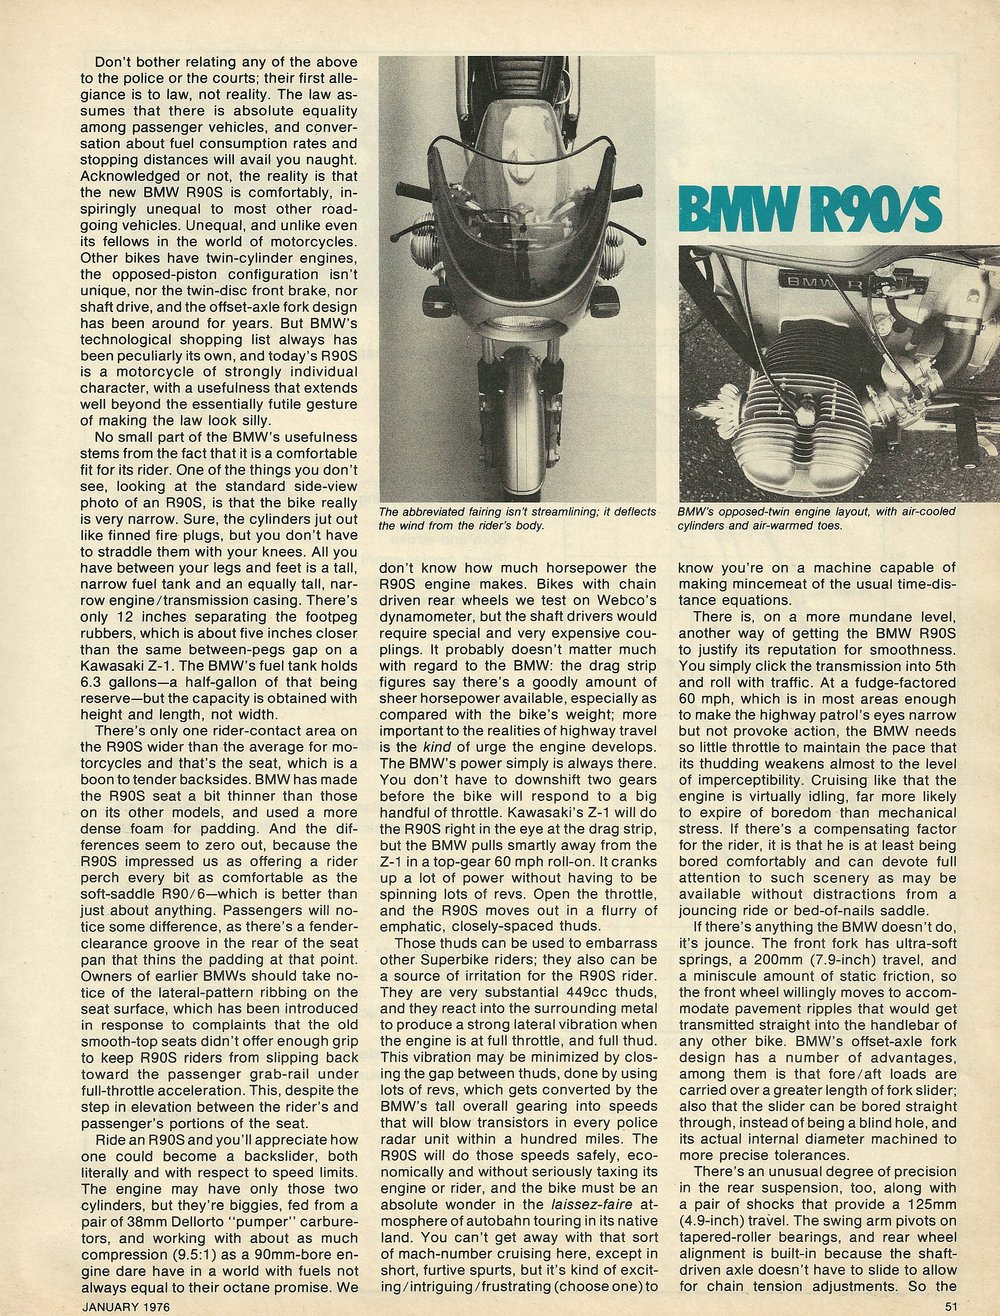 1976 BMW R90S road test 4.JPG